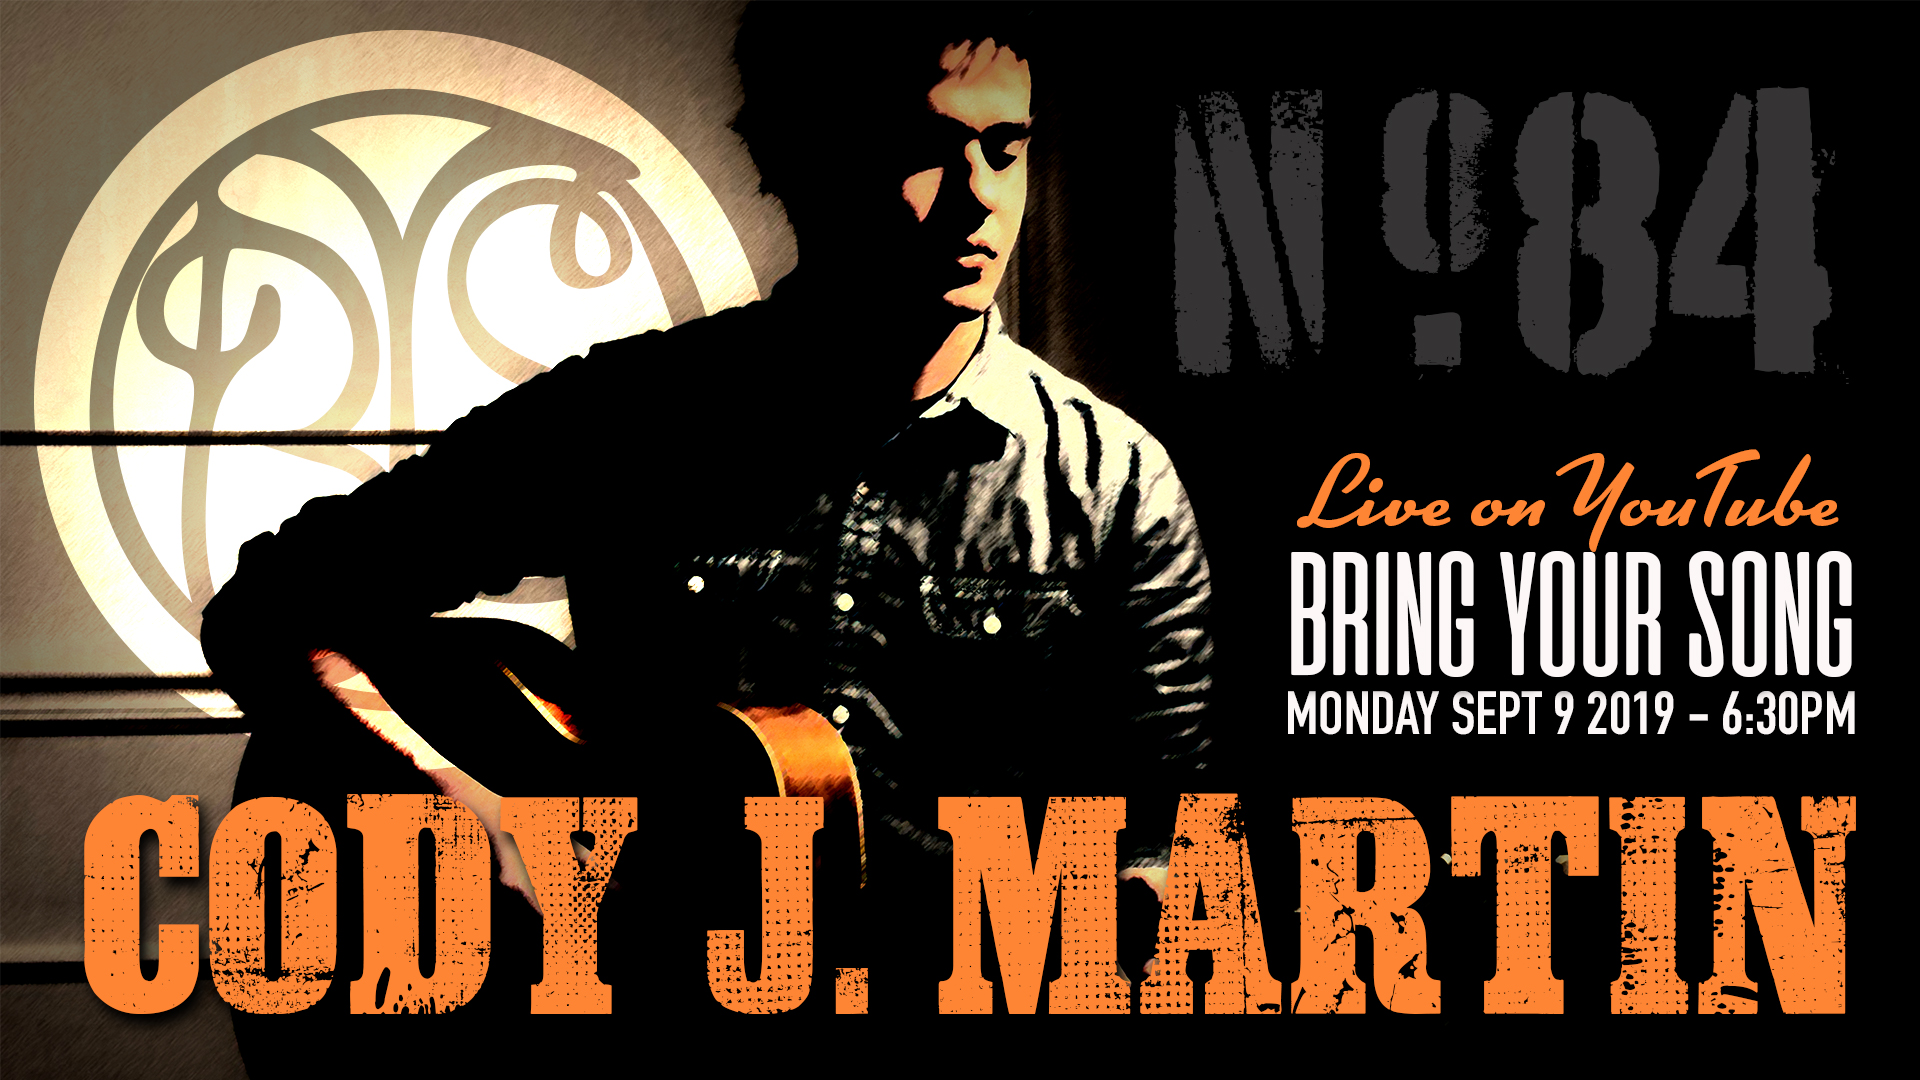 Cody J. Martin, Featured Artist at BRING YOUR SONG in Canton Ohio, September 9th